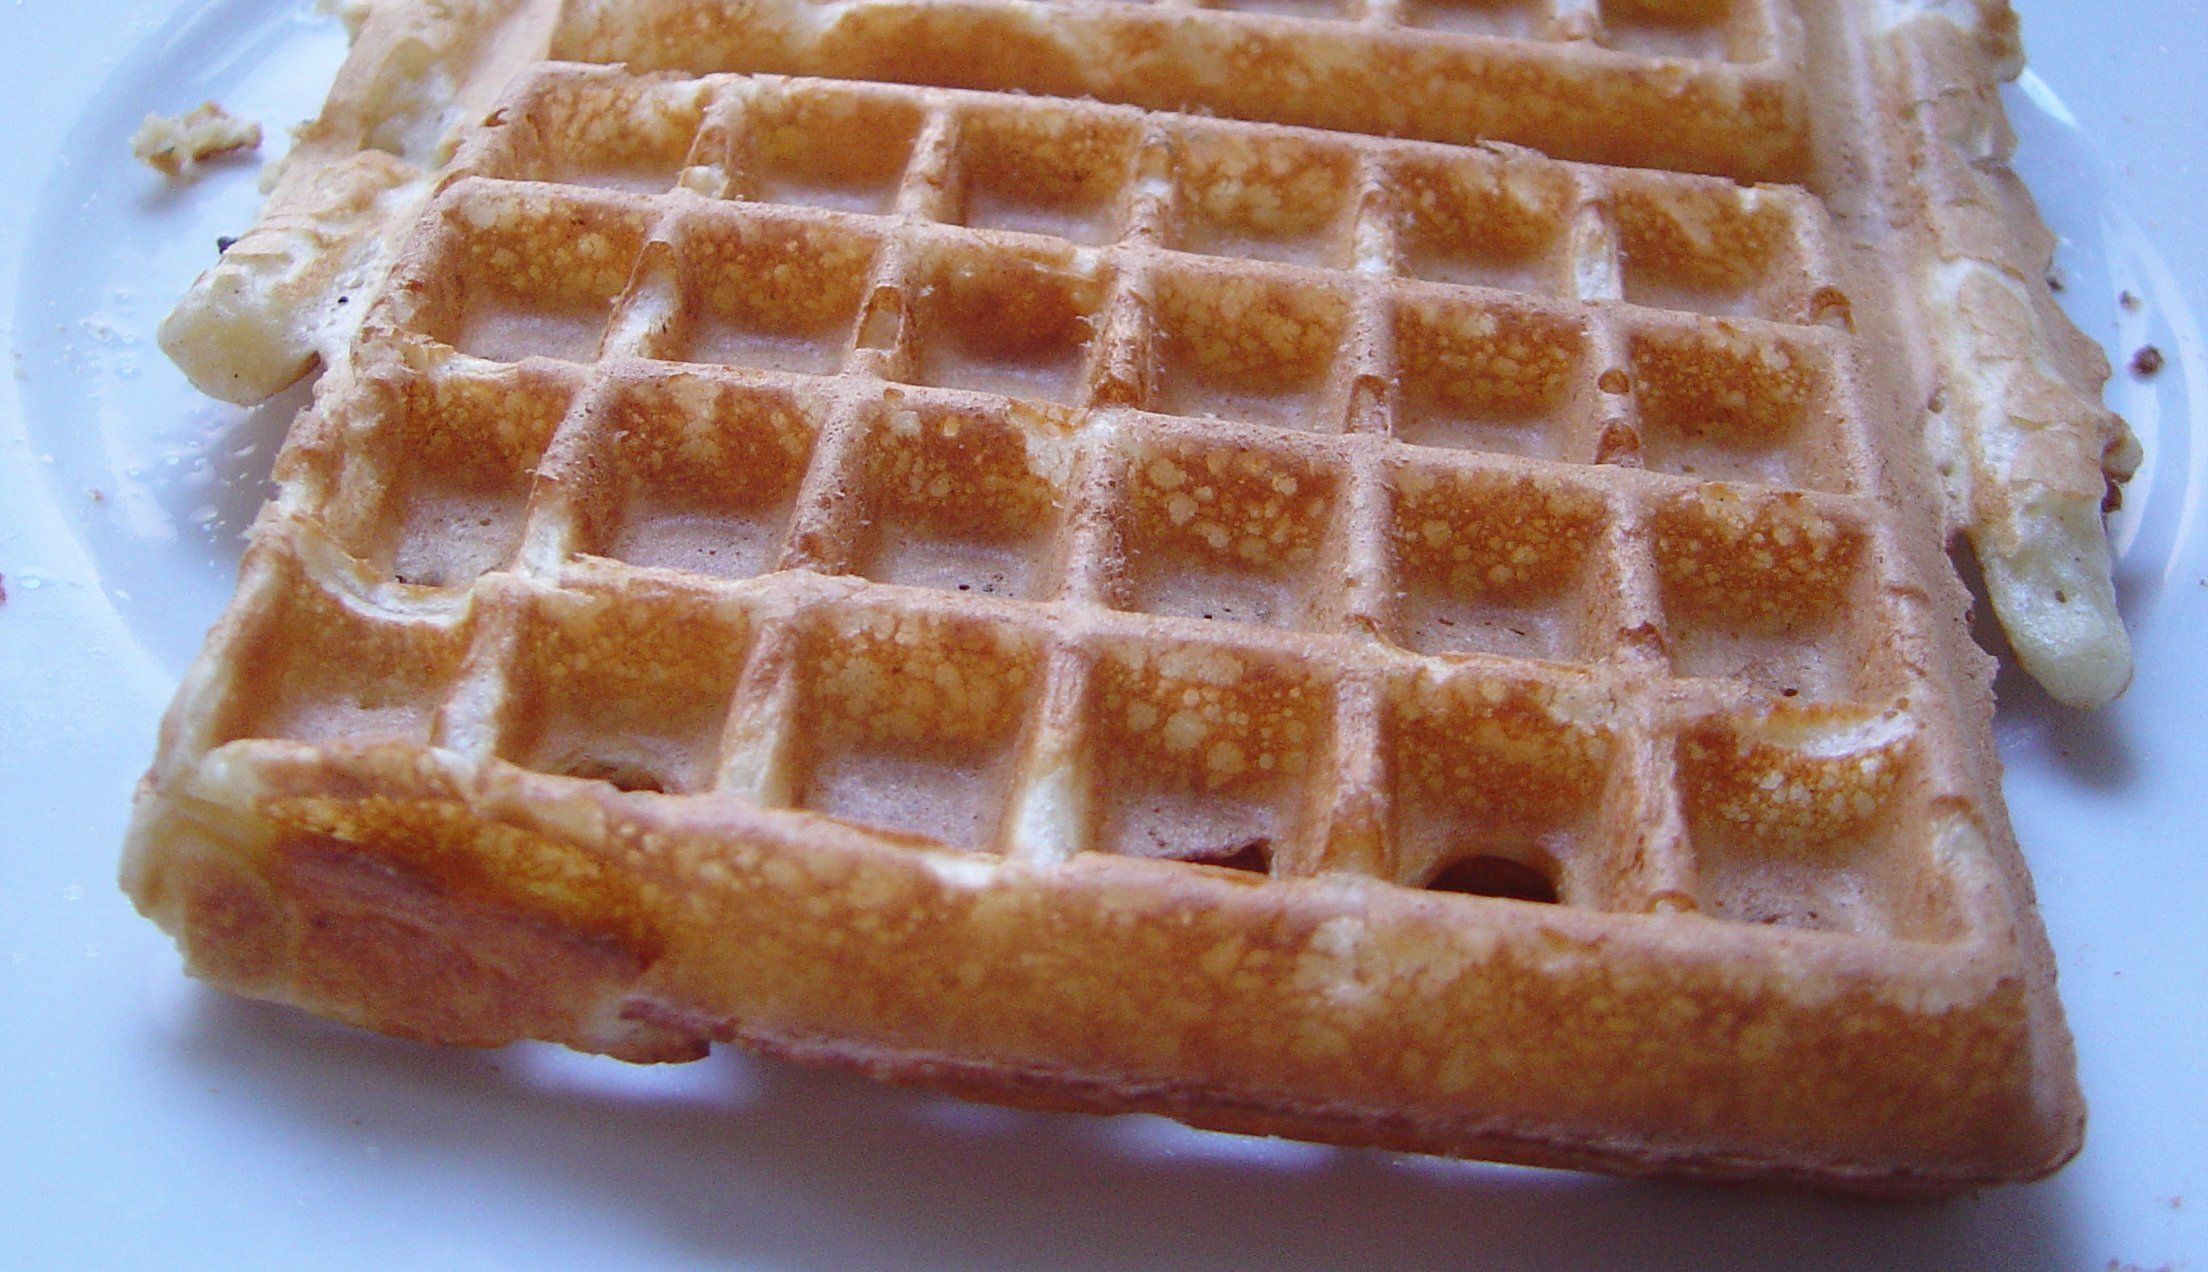 http://upload.wikimedia.org/wikipedia/commons/8/8c/Waffle_DSC00575.jpg